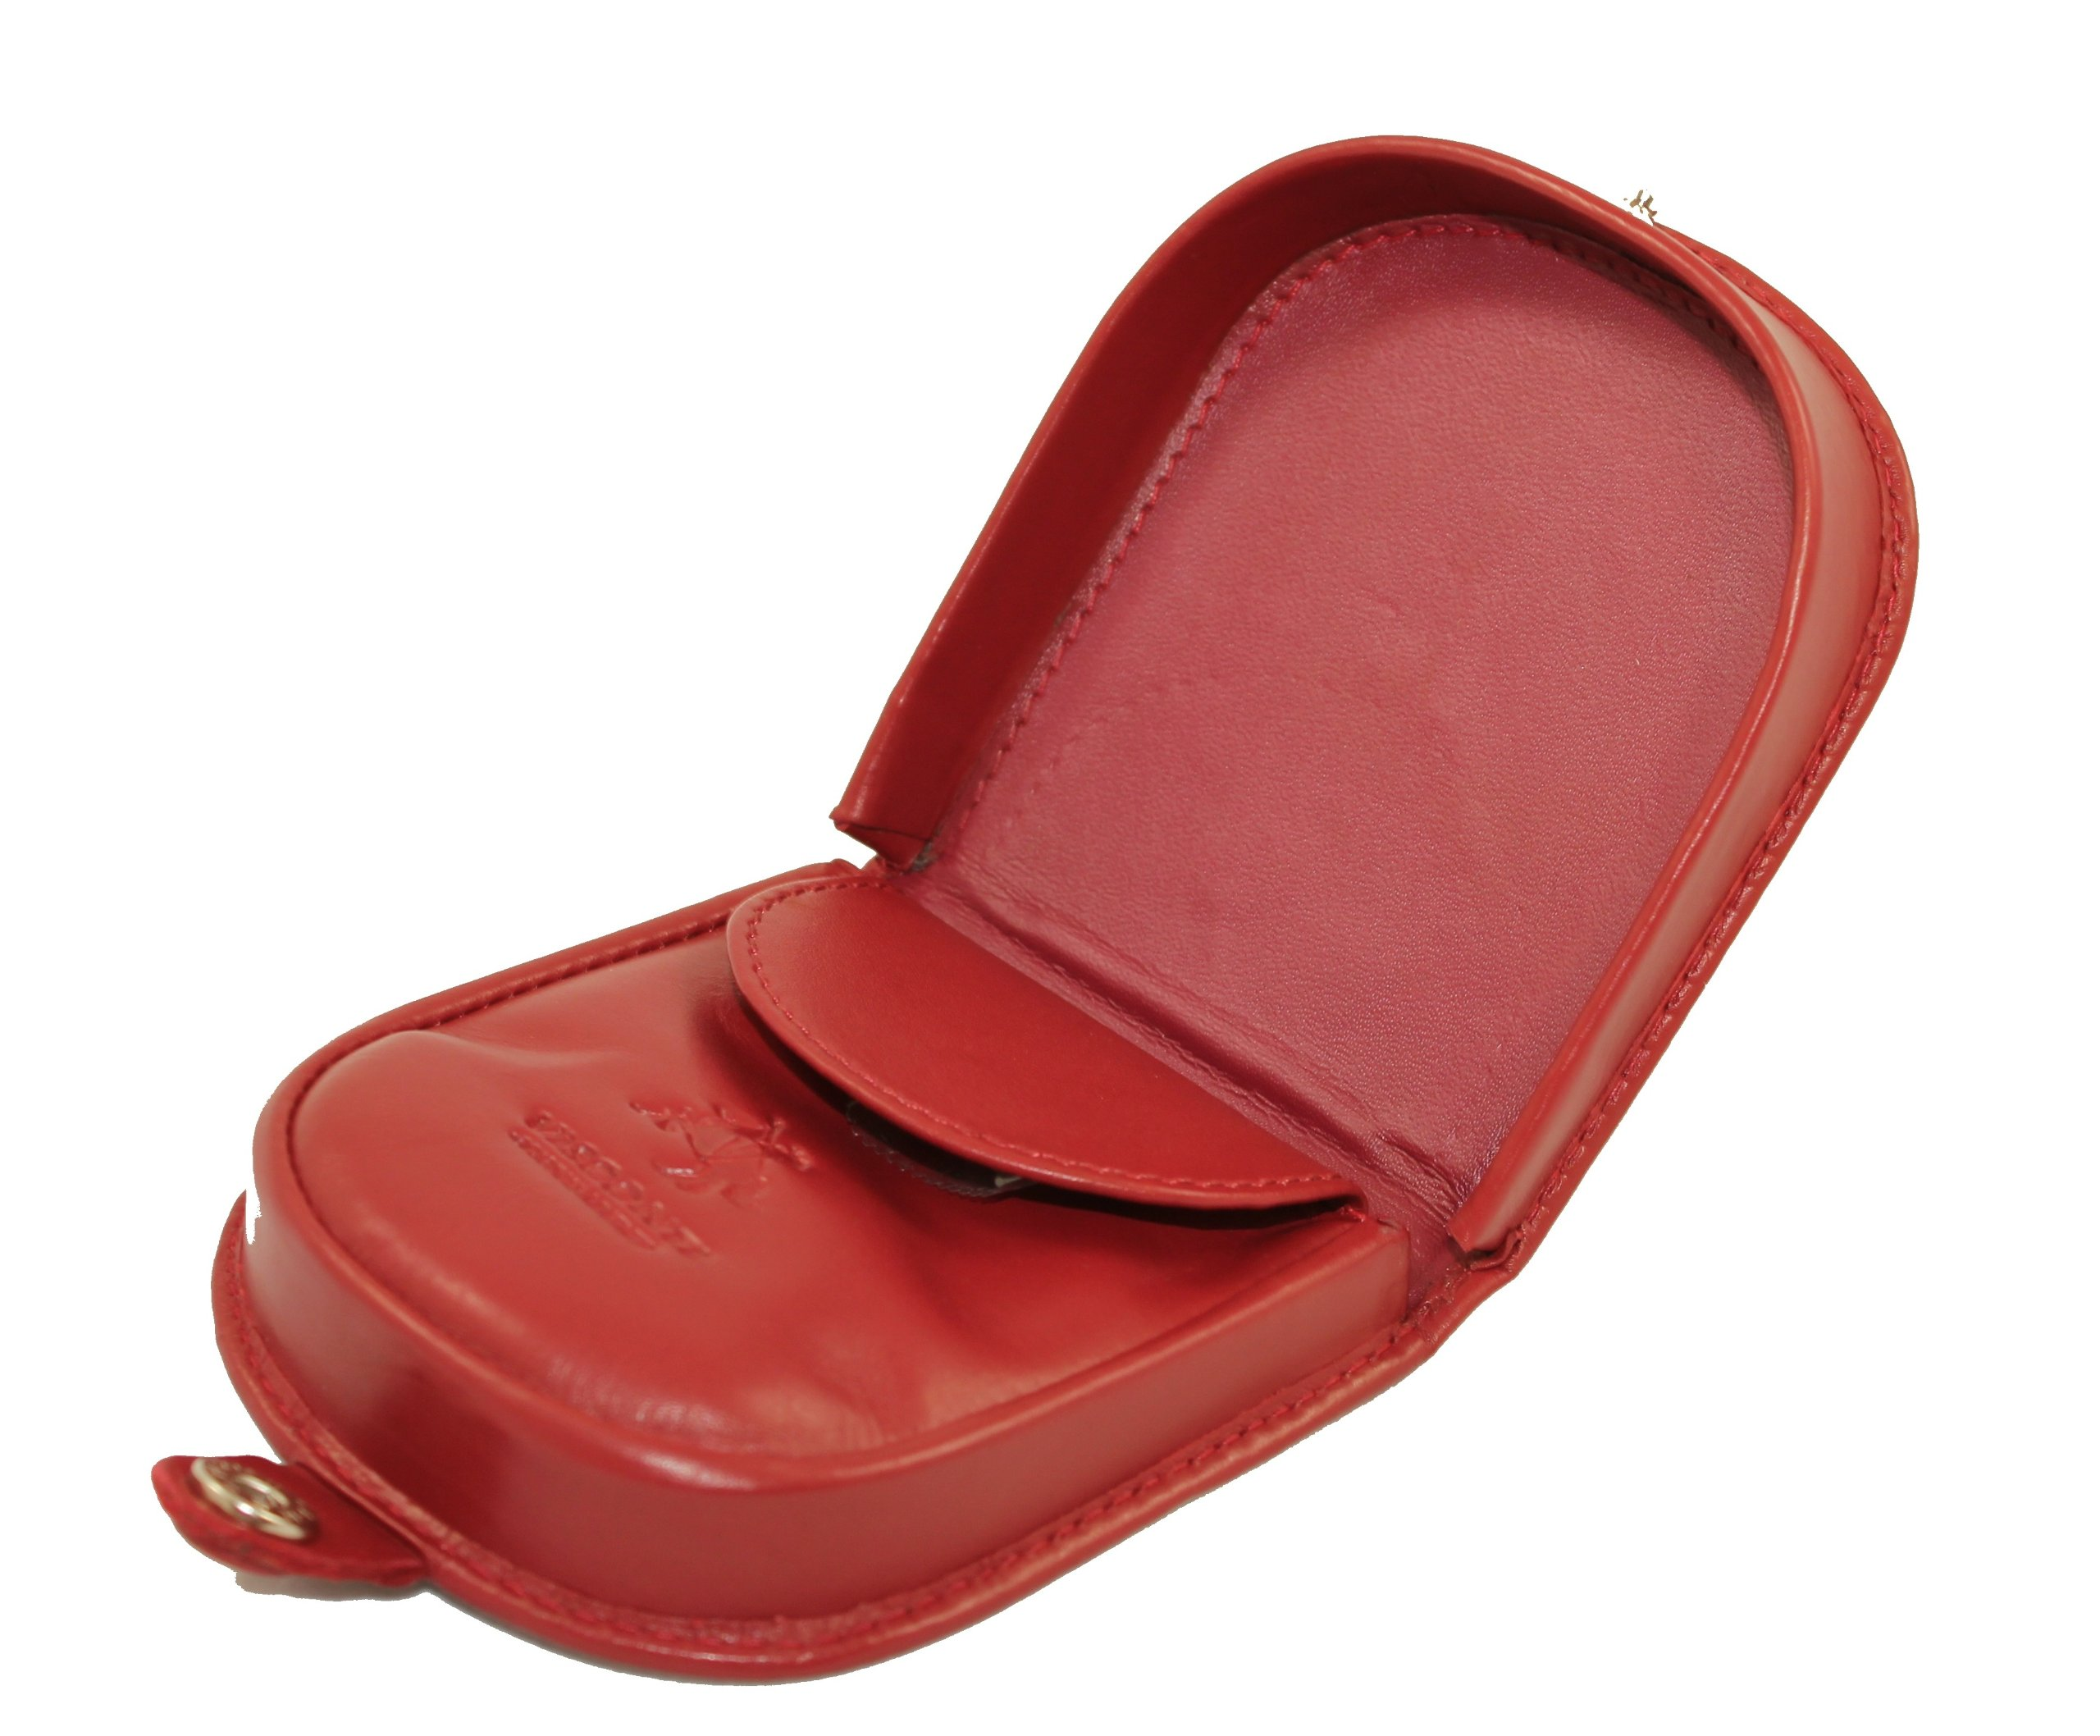 fca879eae7 Details about Visconti Polo T-5 Brown Soft Leather Coin Purse Pouch Tray/Change  Holder (Red)